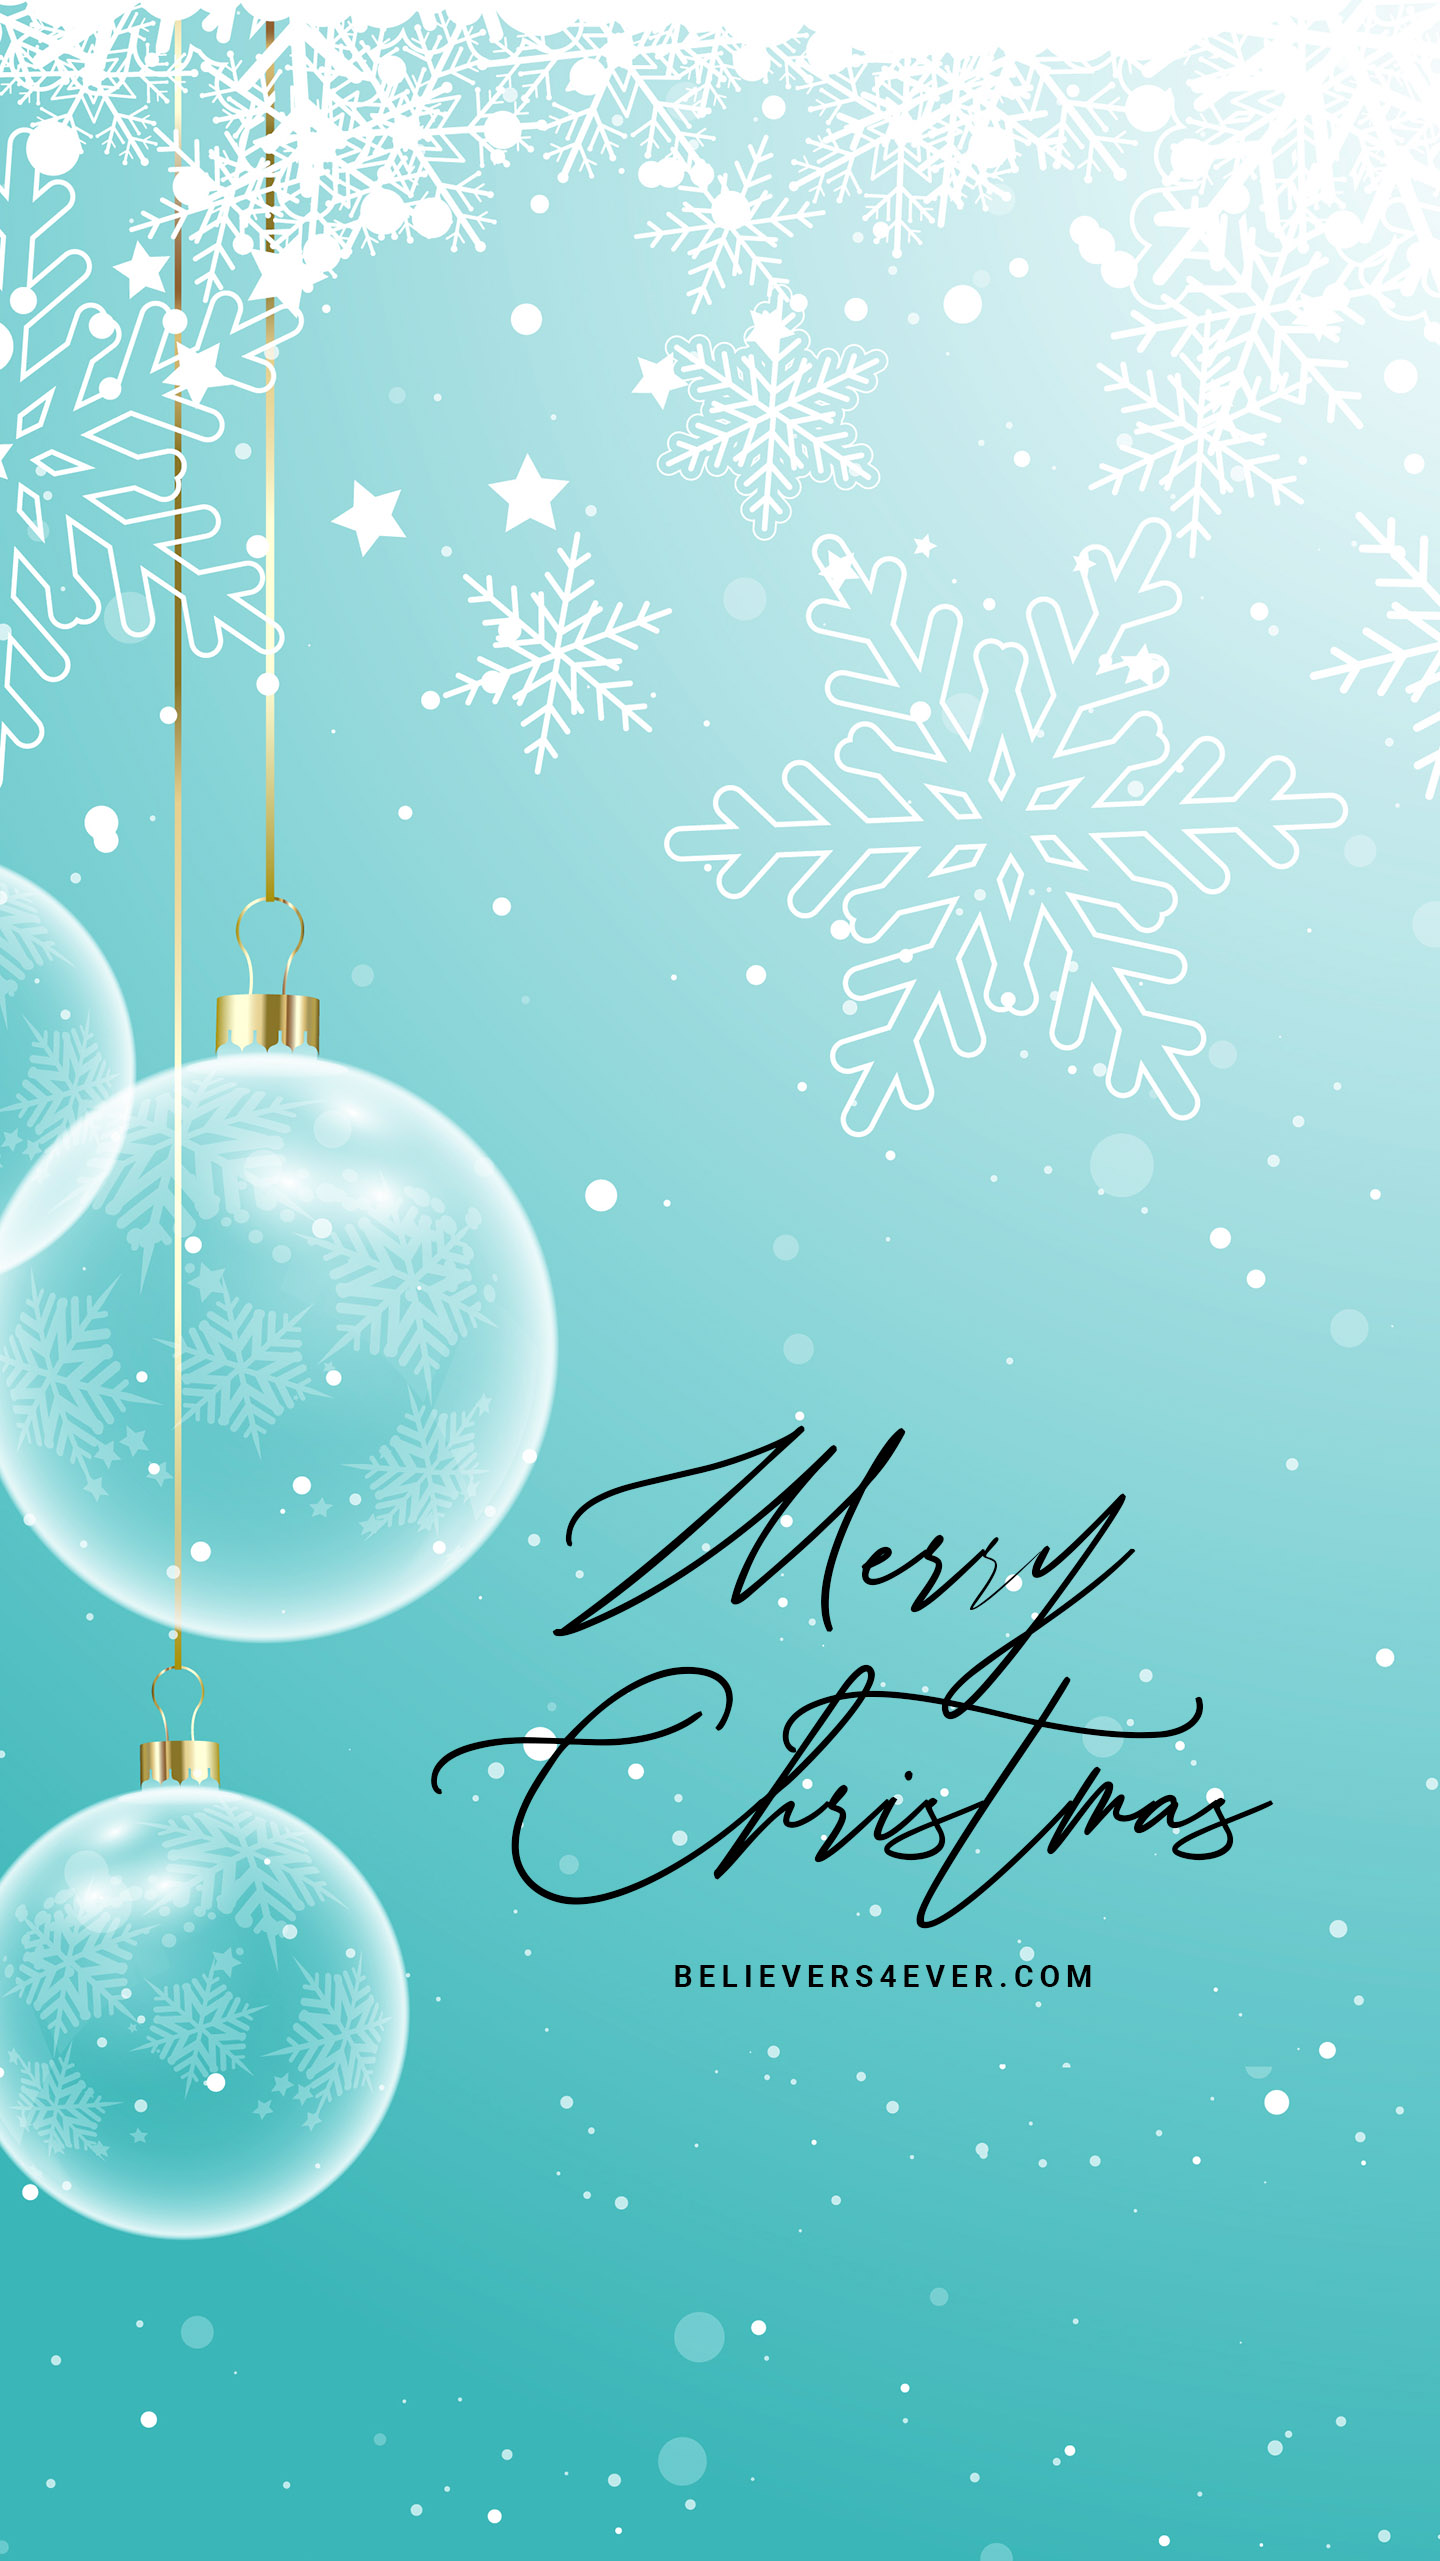 Christmas Wallpaper Archives Believers4ever Com